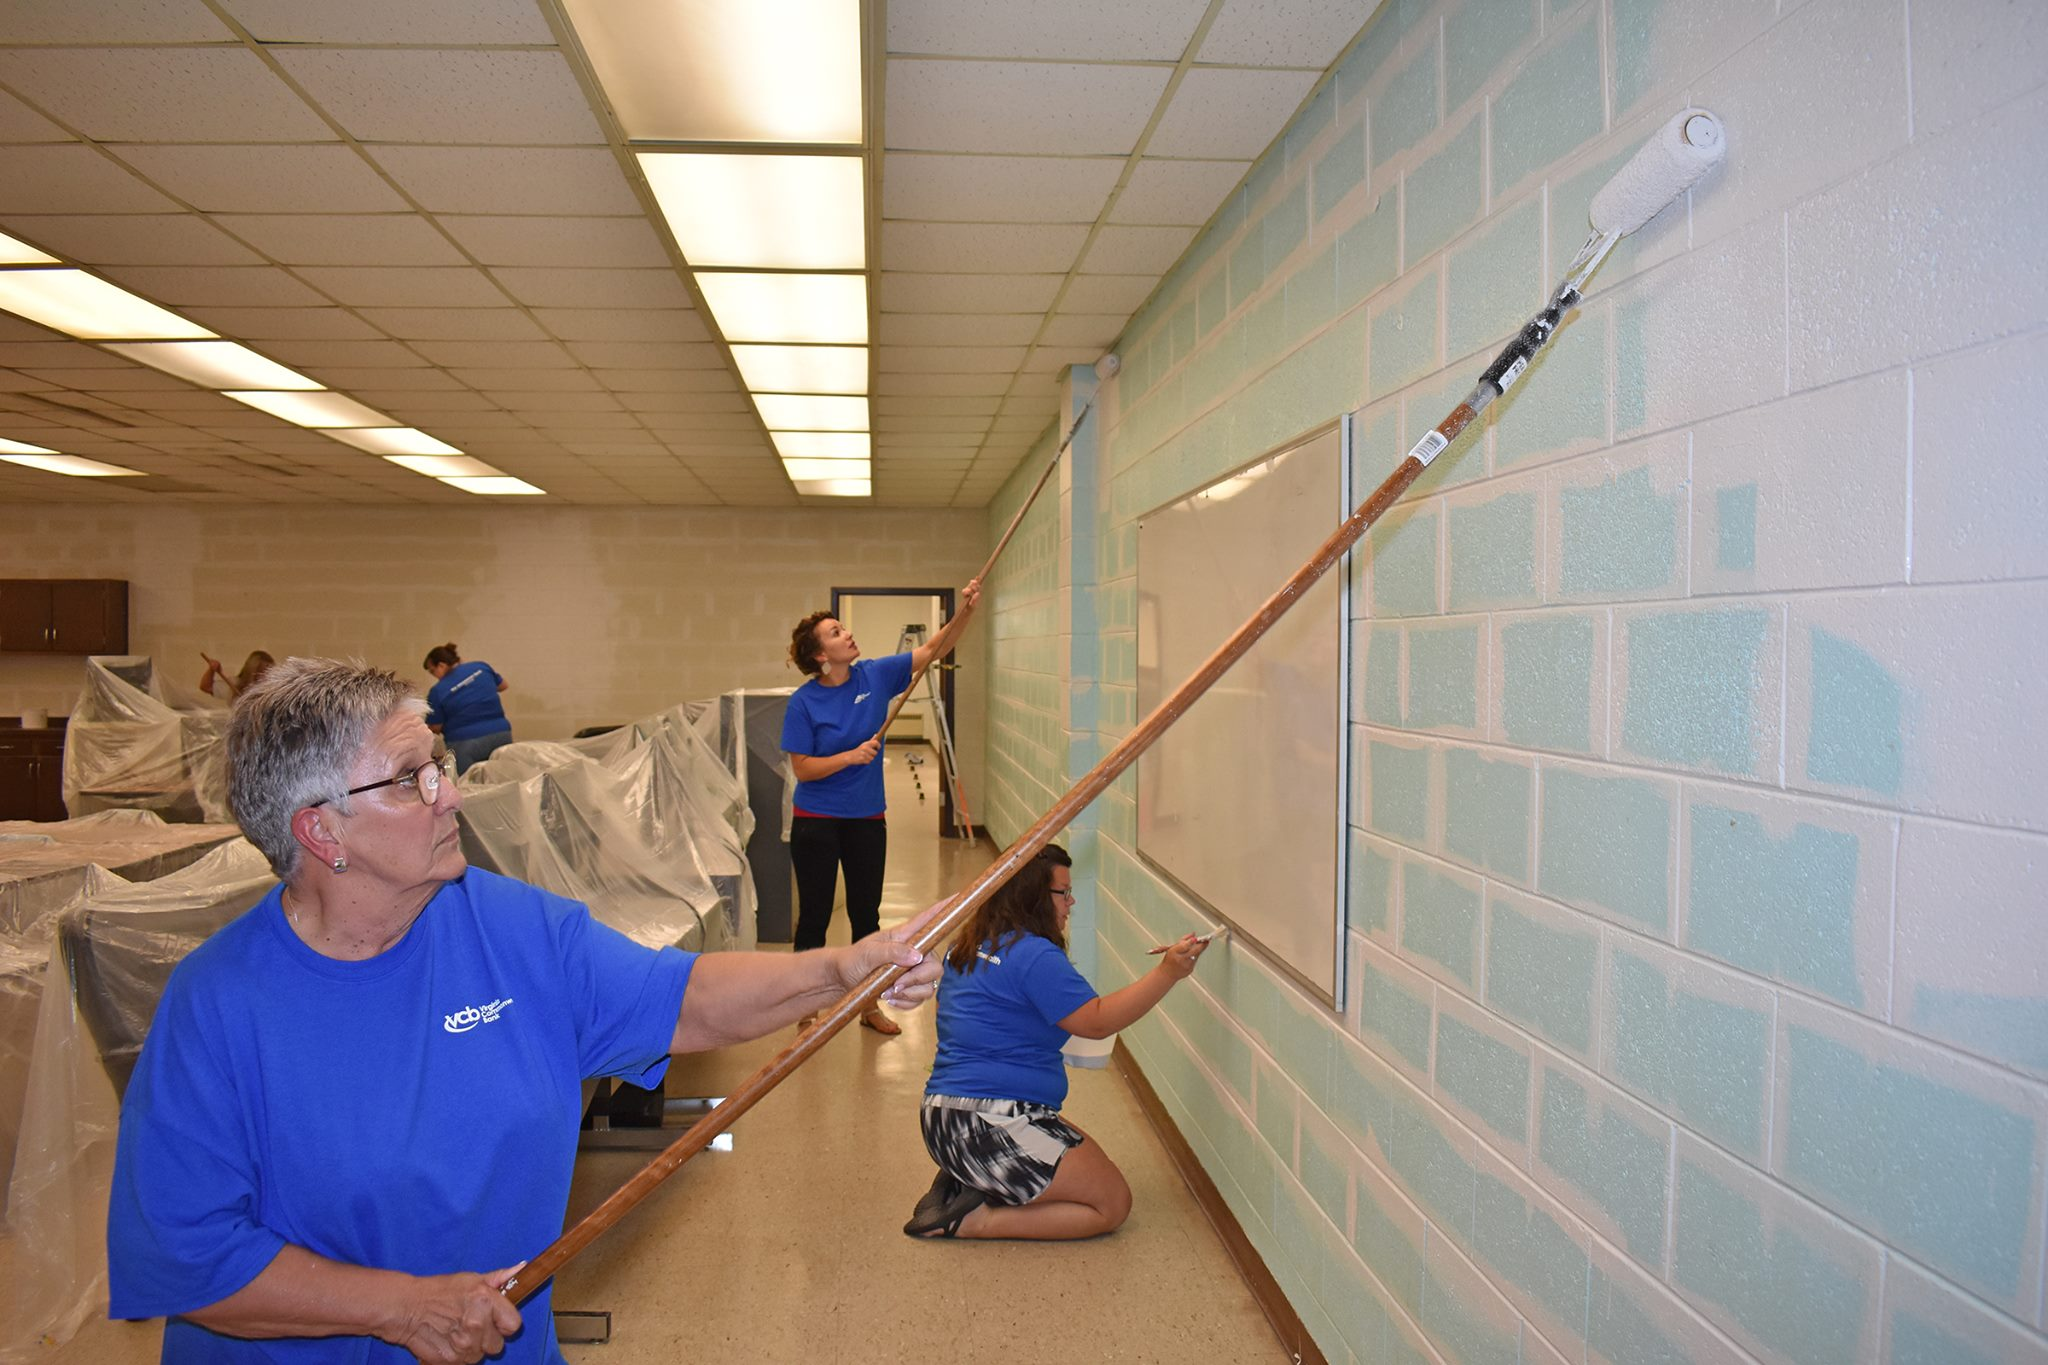 petersburg high school painting_1532975101796.jpg.jpg